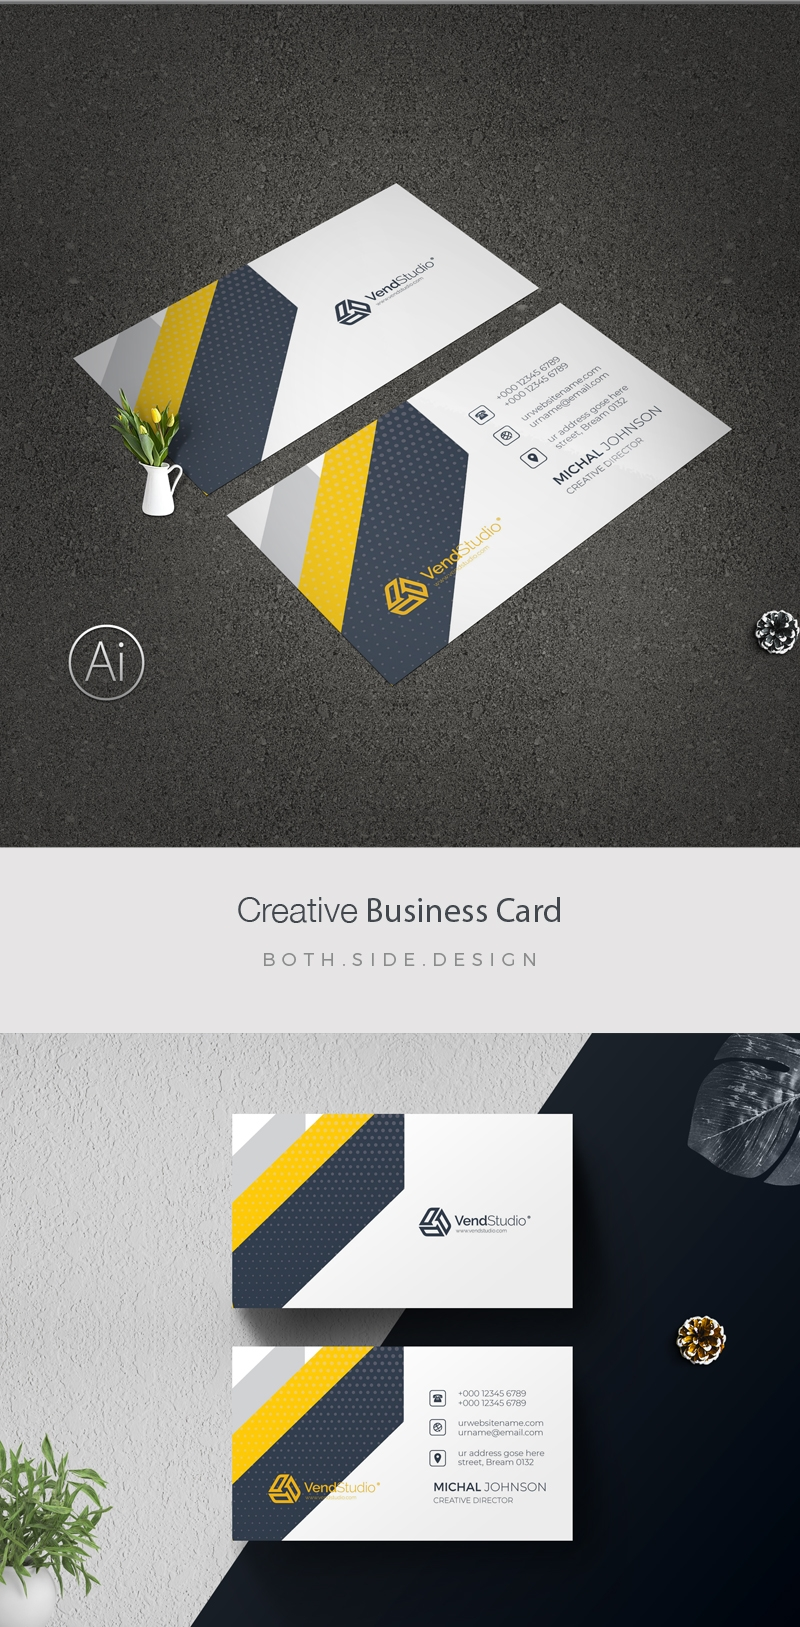 Minimal BusinessCard With Black Yellow Accent